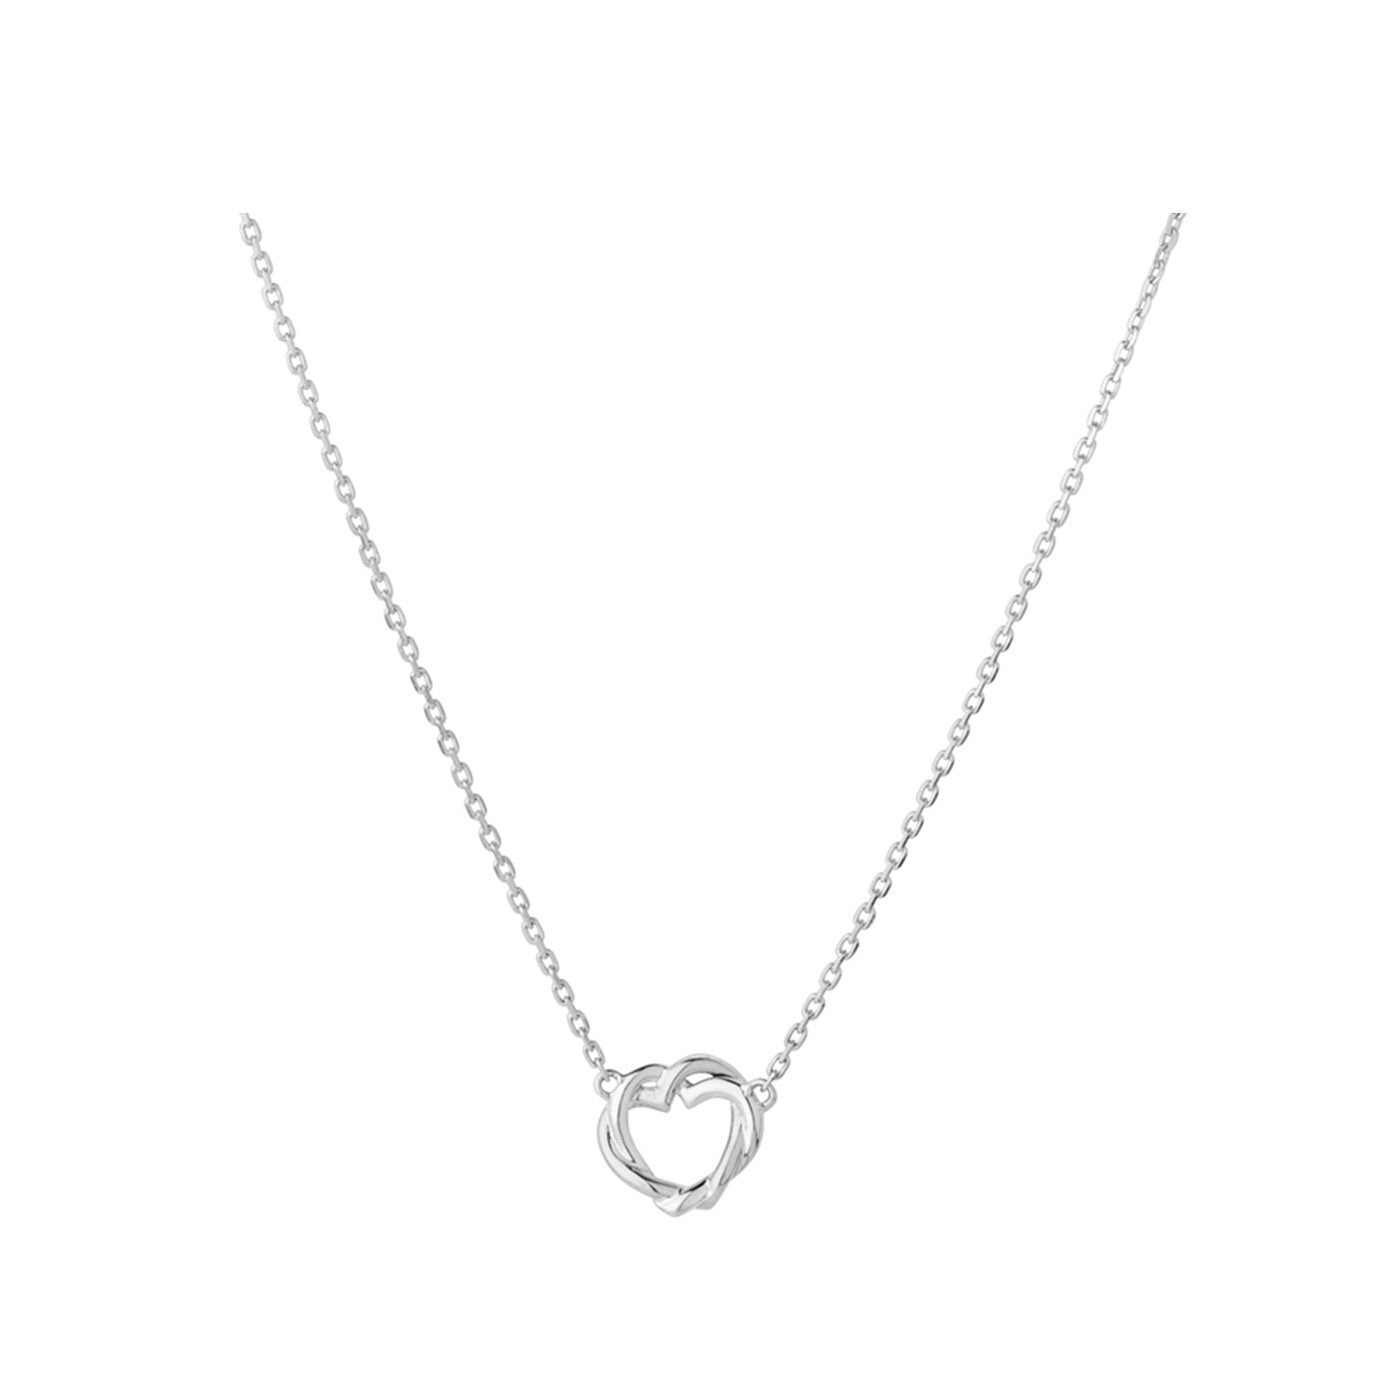 Links of London Kindred Soul Pendant Necklace - 5024.1351